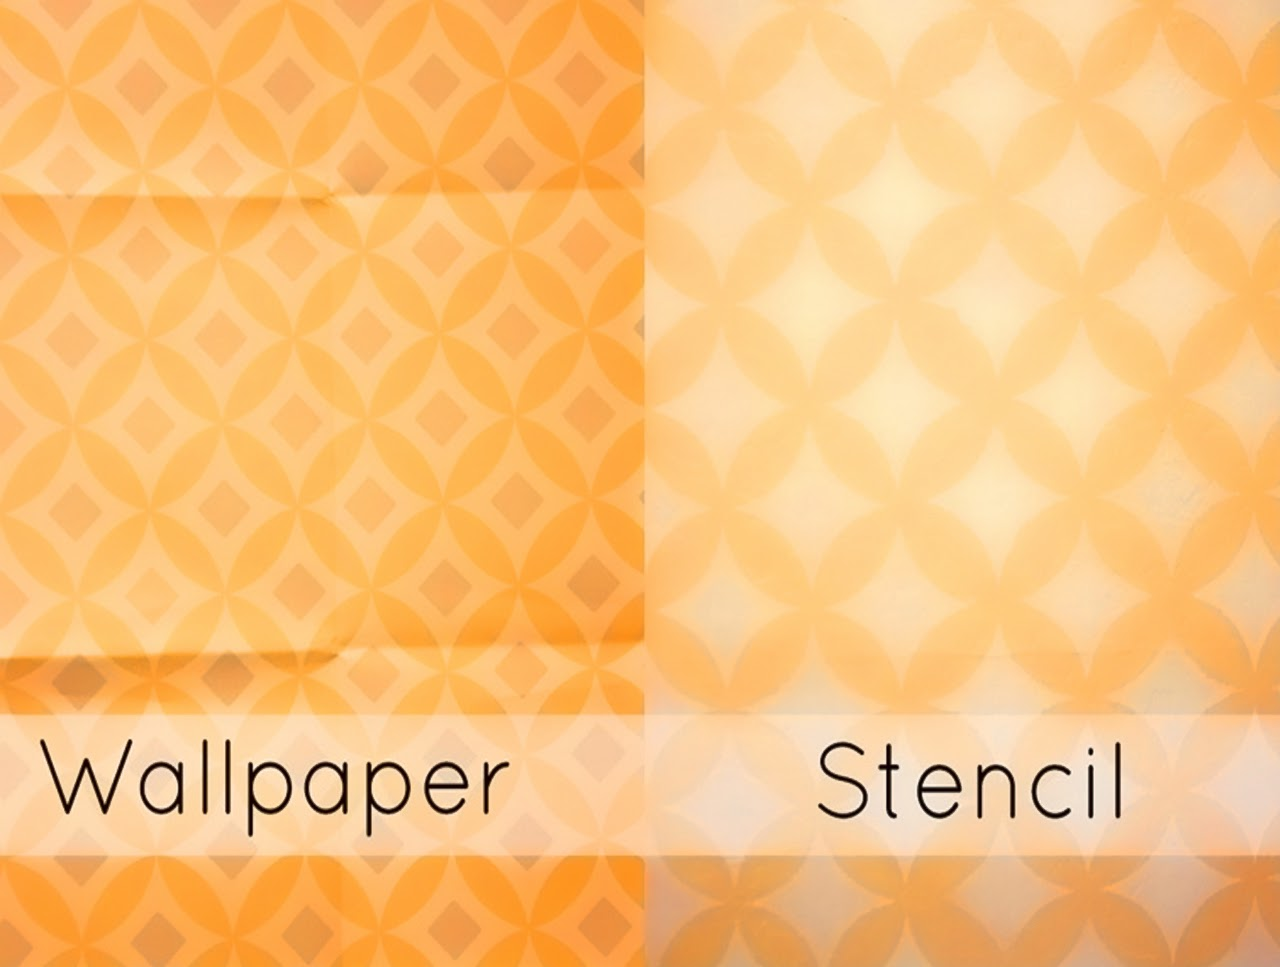 sherwin williams wallpaper sherwin williams wallpaper sherwin williams ...